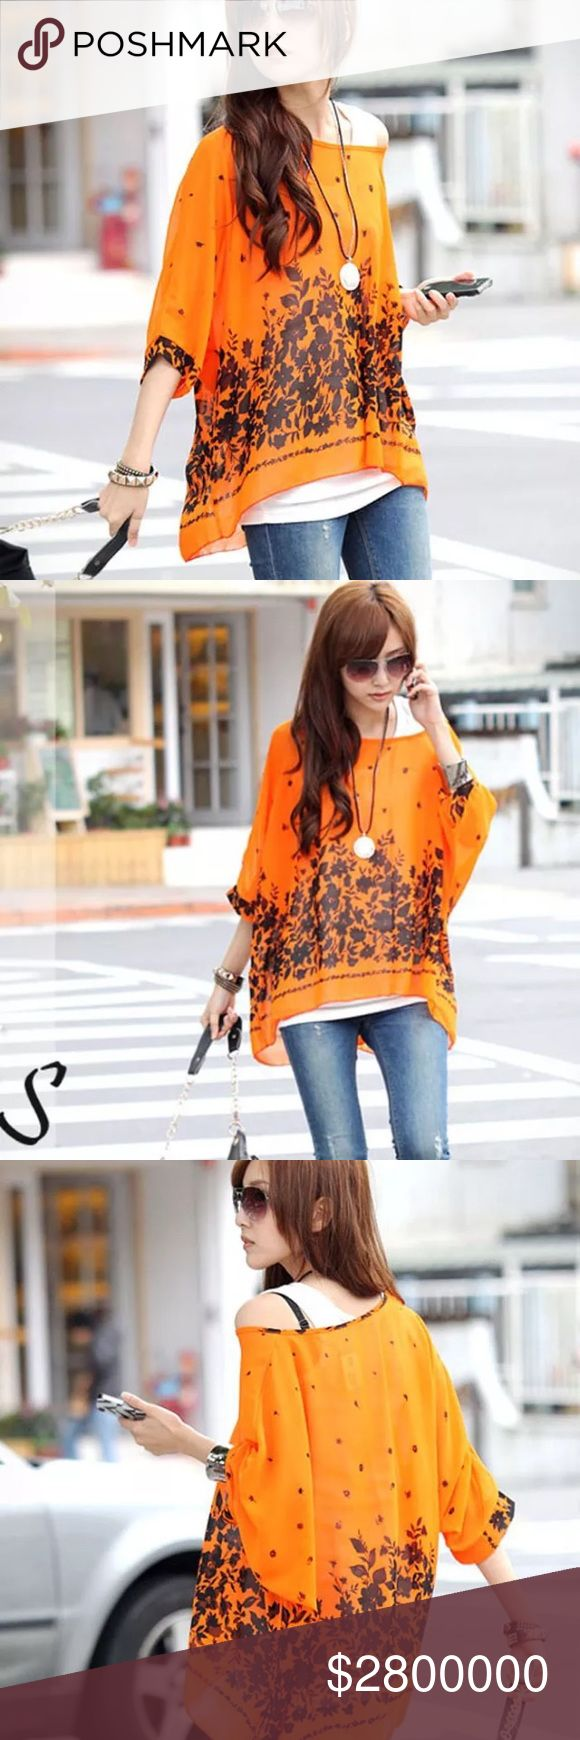 Cute Oversized Orange & Black Short Sleeve Top HP 11/15🎉🌼🎄Brand New Oversized, Orange and Black Short Sleeve Top/Blouse. OSFM. Semi Sheer. Lightweight. O Neckline. Batwing, Dolman Sleeves. Perfect for Layering. Material: Chiffon 🎁🎄Why wait, the Pre-Black Friday Sale Starts NOW!!🎁🎄Add Your Like(s) To A Bundle To Receive An Incredible Private Discount.🎁🎄 Tops Blouses